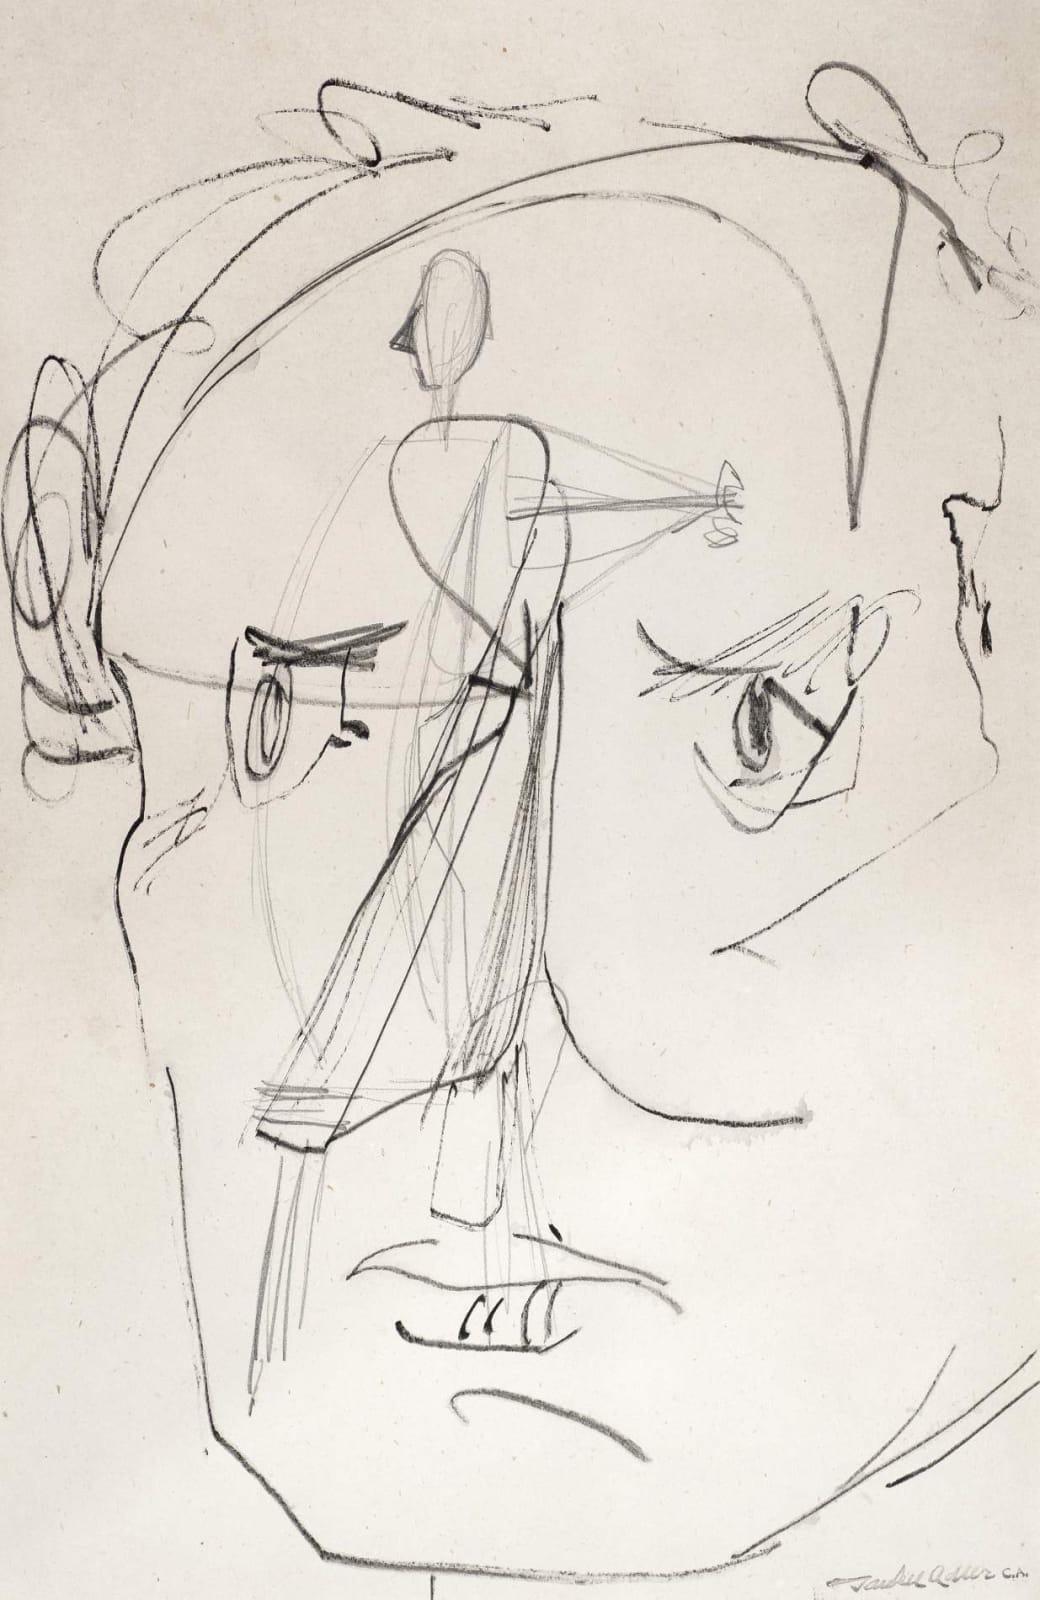 Jankel Adler (1895-1949) Self Portrait n.d. Pen and ink on paper 70 x 58 cm Charles Bezalel Aukin Collection To see and discover more about this artist click here